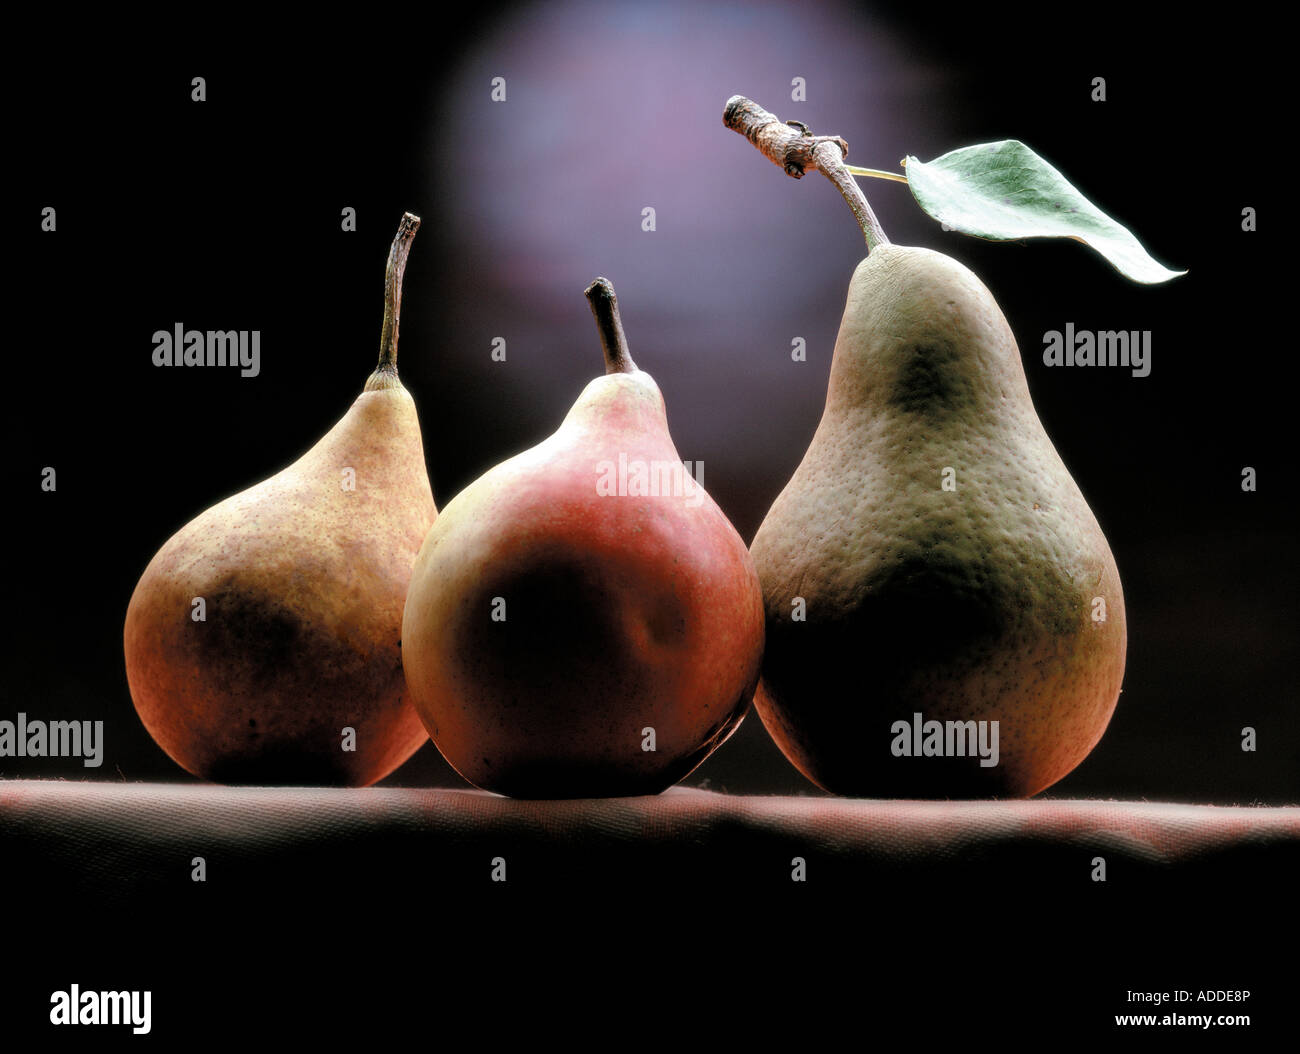 Pears - Stock Image